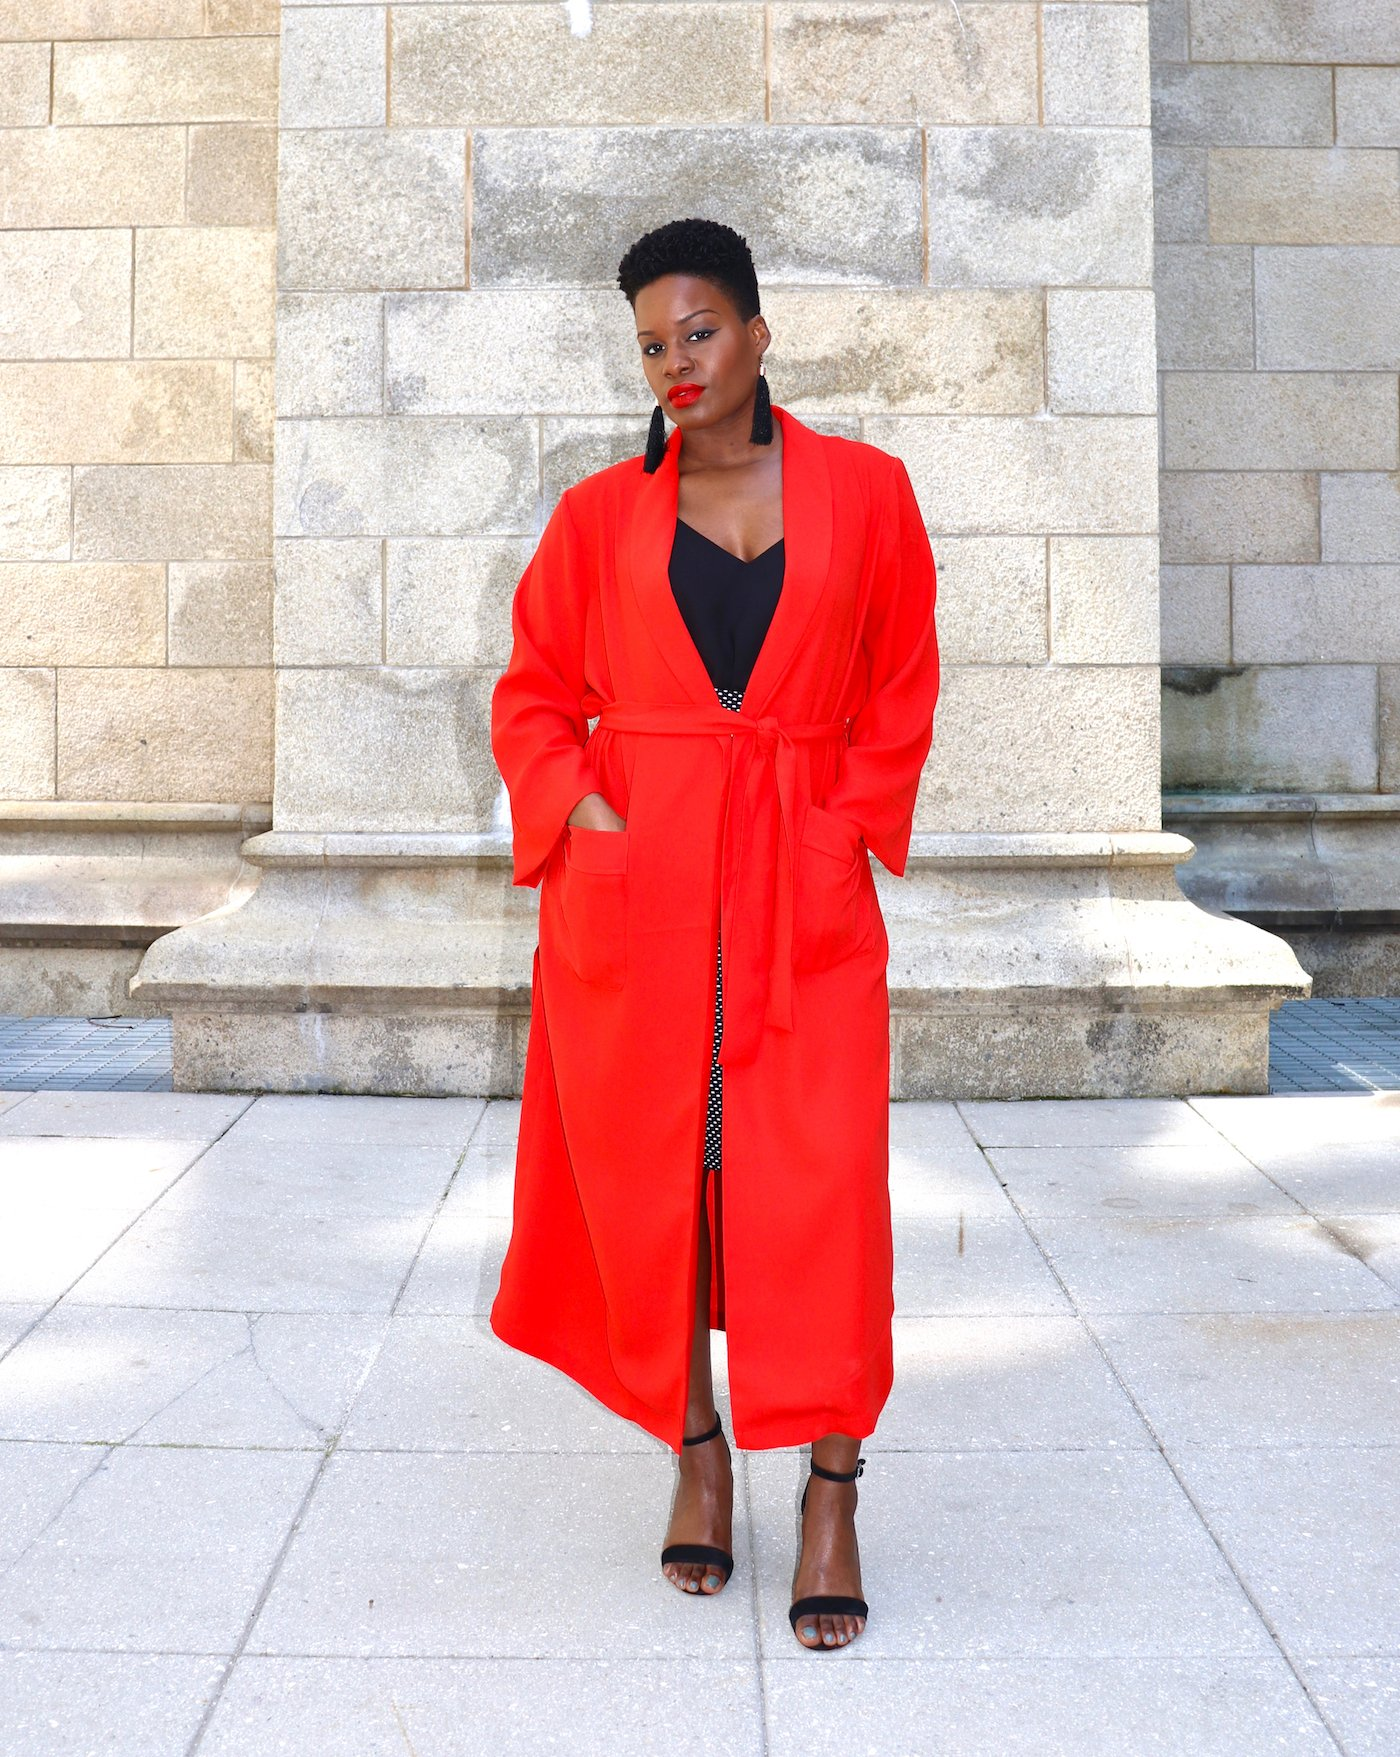 red duster coat outfit